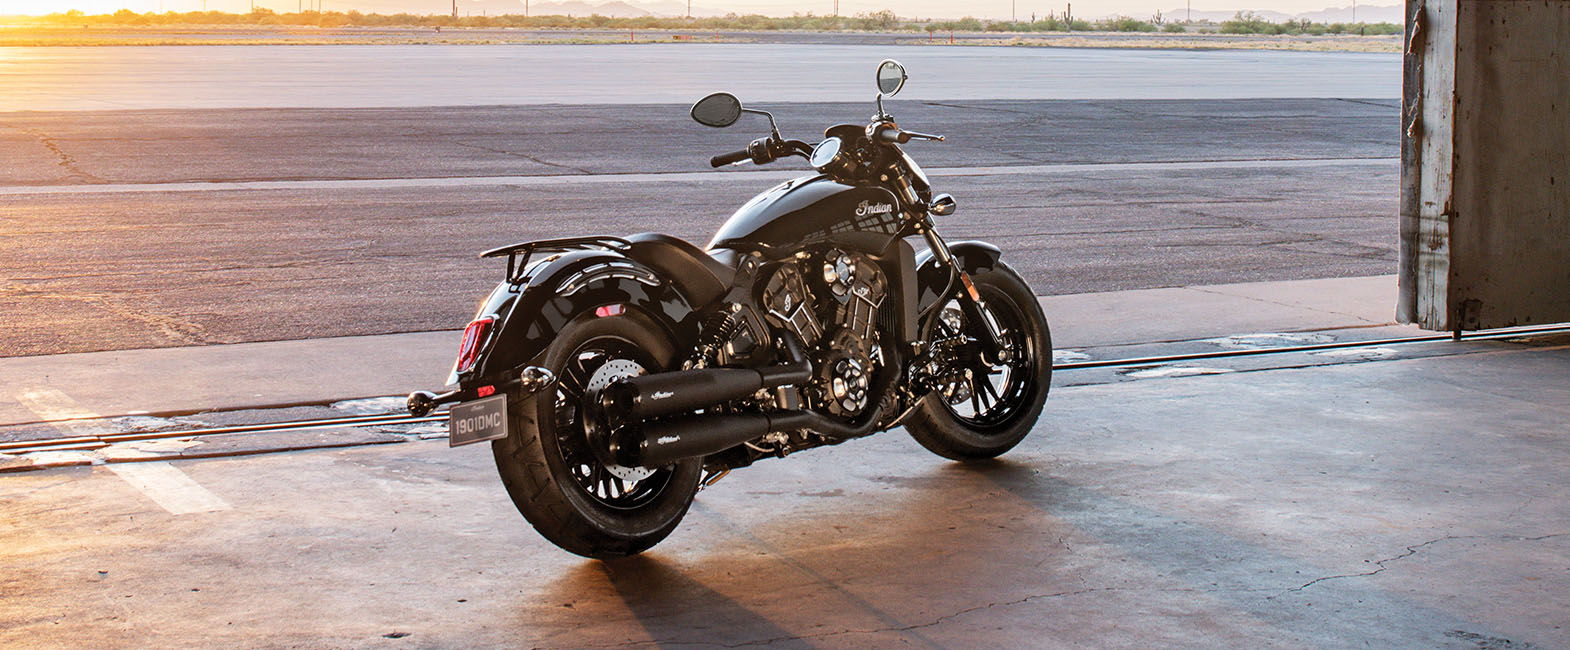 2020 Indian Scout Sixty Specs Info Wbw